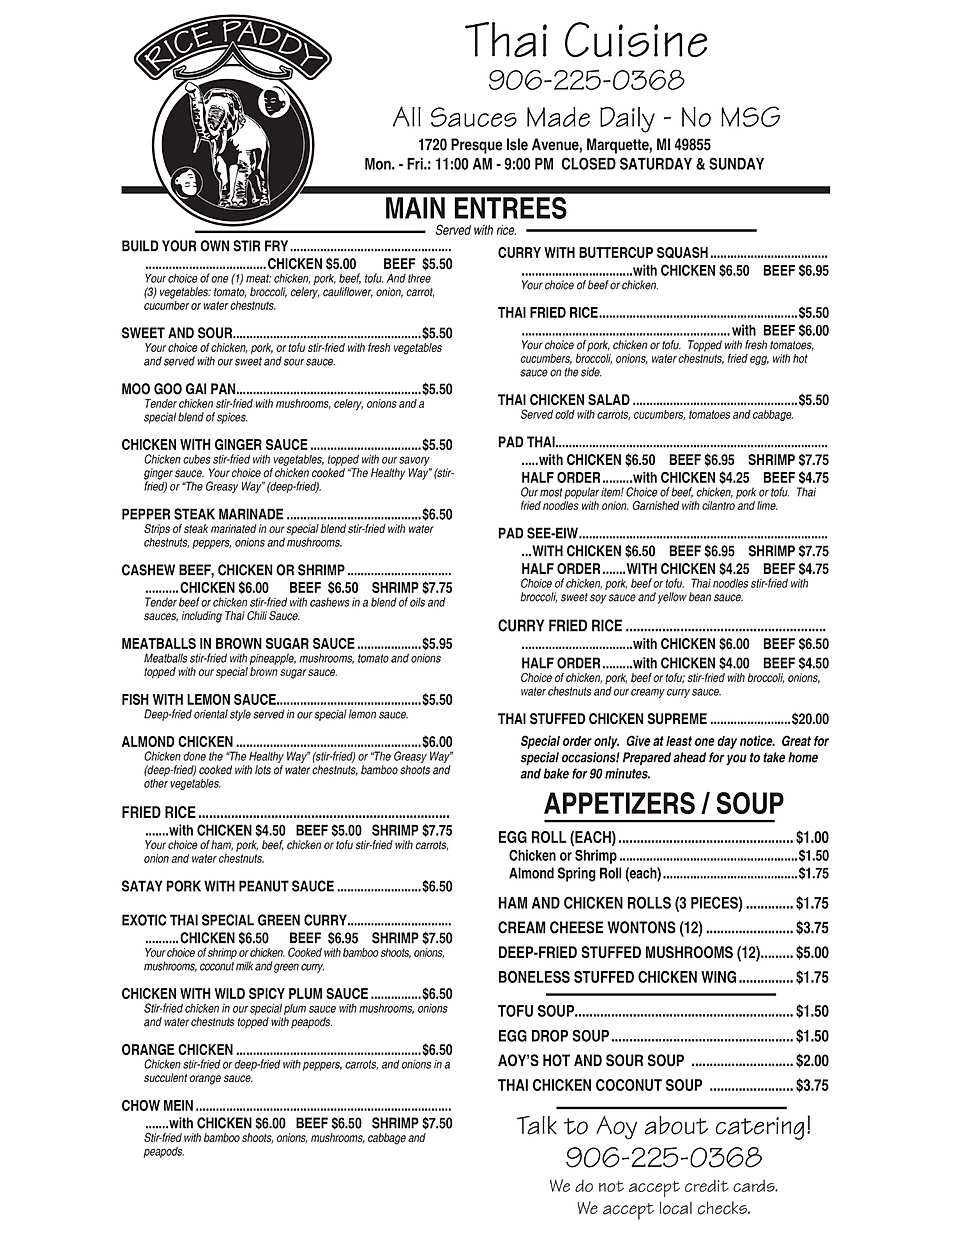 Rice Paddy restaurant menu hours location deals Marquette Now